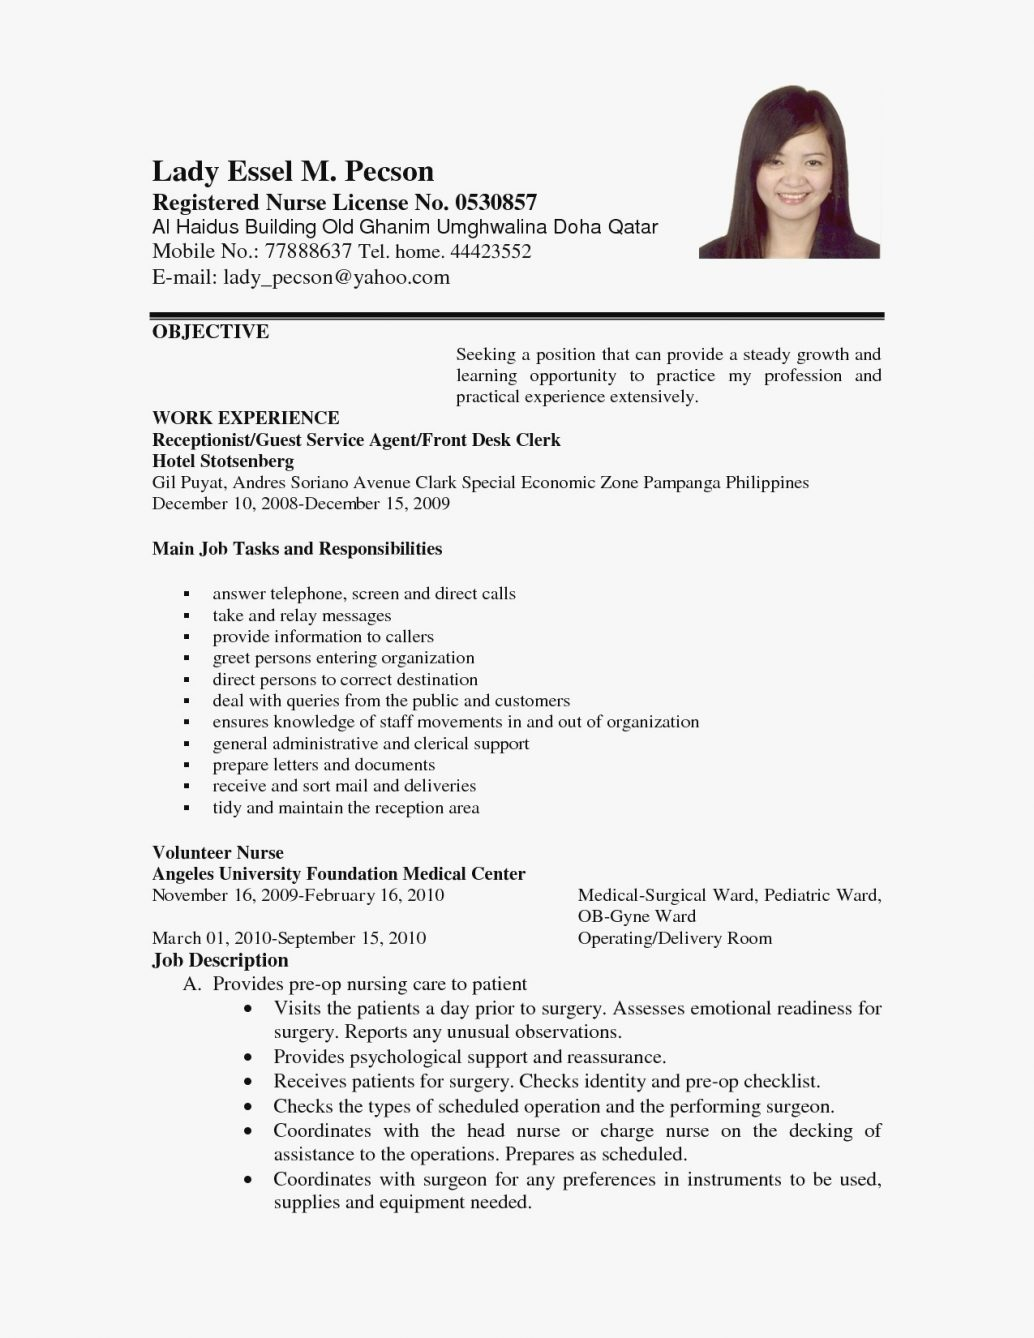 Good Objective For Resume Job Objective In Resumes Simple For Resume Fresh Good Objectives New Post Administrative Assistant Effective Objecti Customer Service Career Call Center General Phlebotomist good objective for resume|wikiresume.com